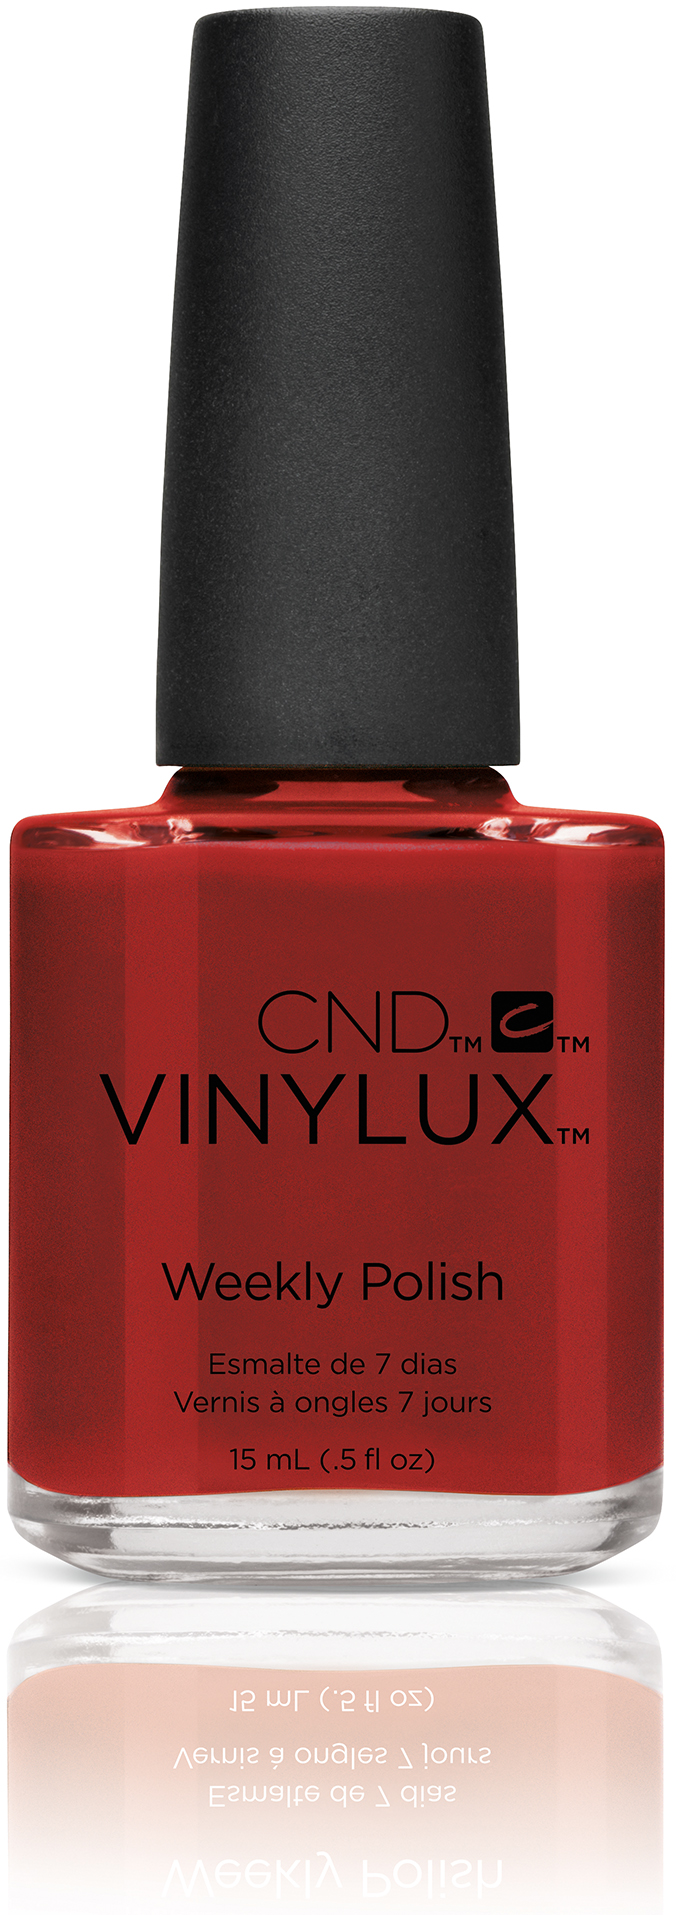 CND Vinylux Craft Culture Collection Brick Knit